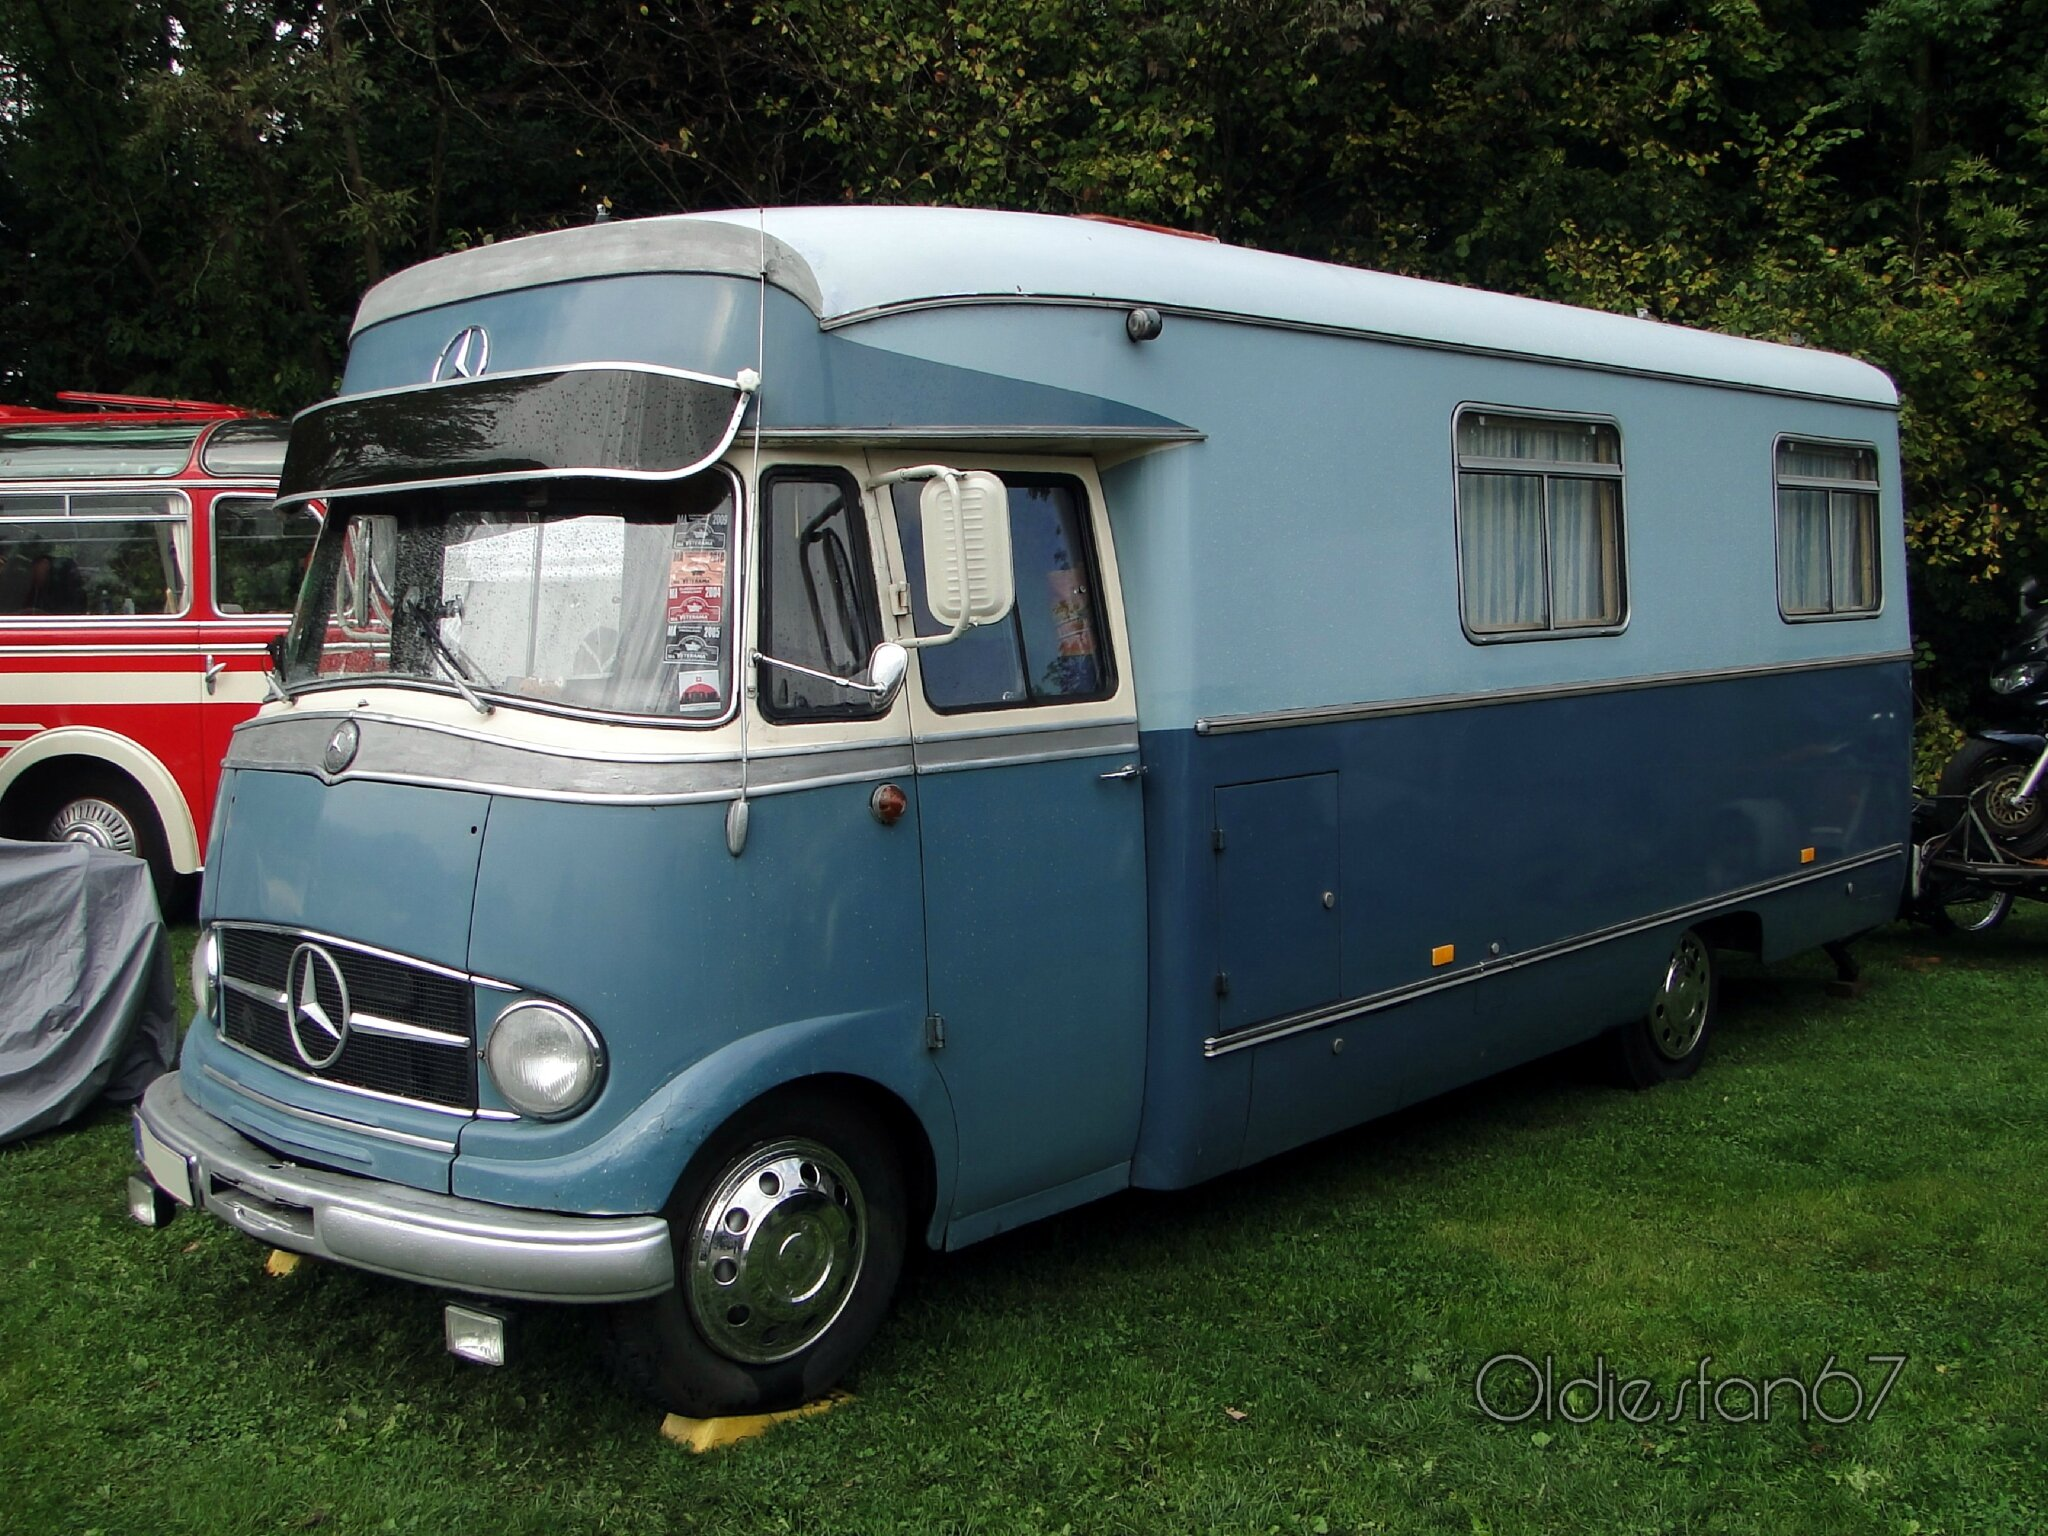 mercedes benz l319 camping car oldiesfan67 mon blog auto. Black Bedroom Furniture Sets. Home Design Ideas